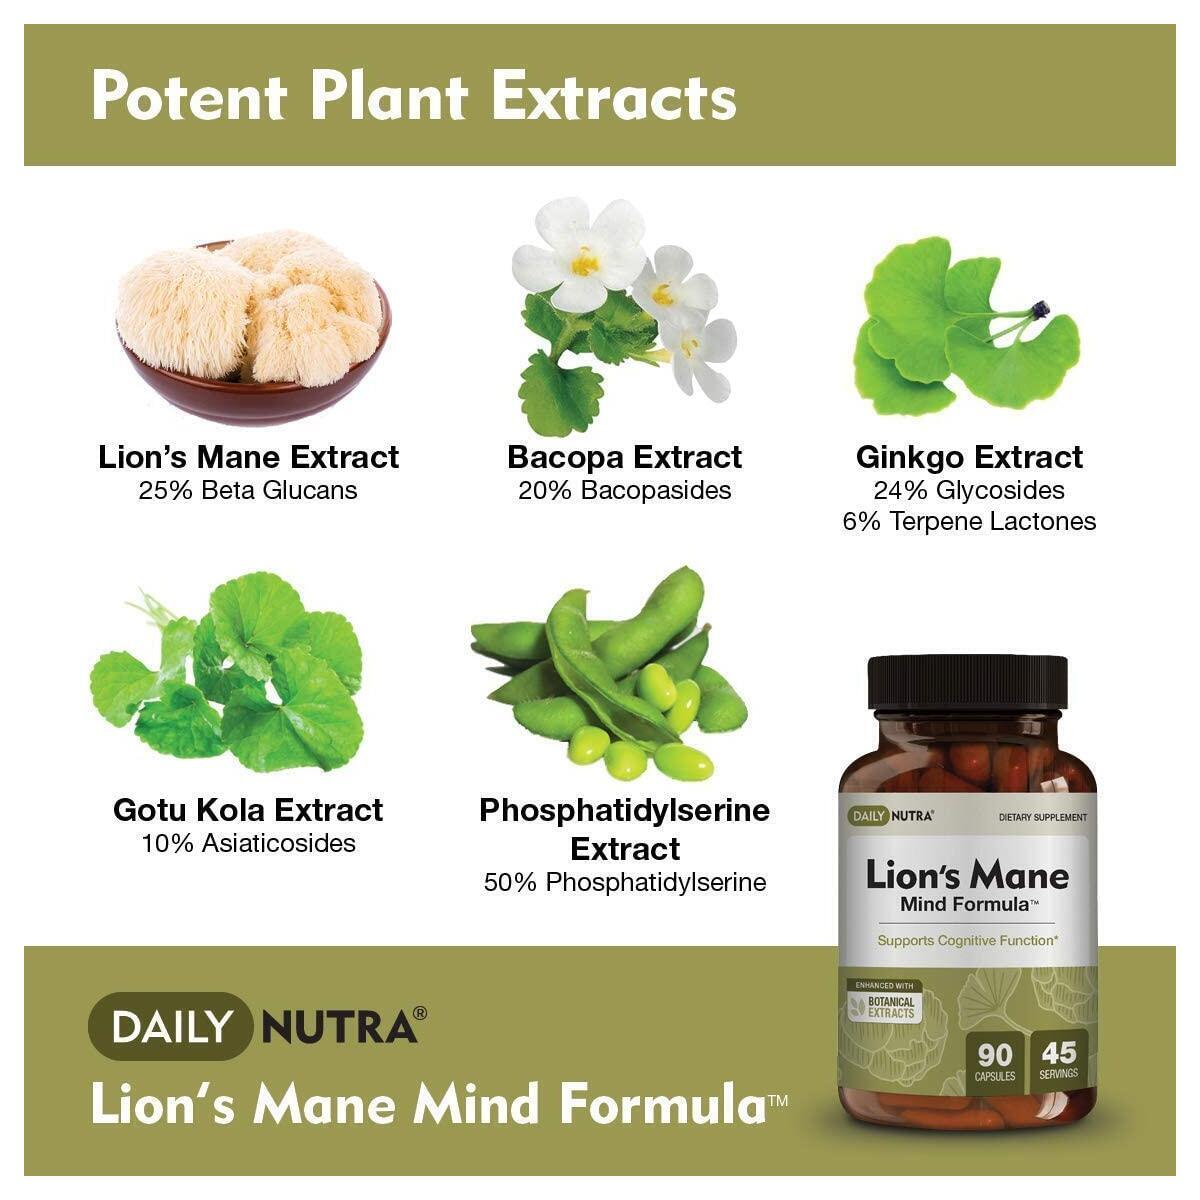 Lion's Mane Mind Formula by DailyNutra - Nootropic Supplement for Cognitive Health | Organic Mushroom Extract with Bacopa, Gingko, Gota Kola, and Huperzine-A